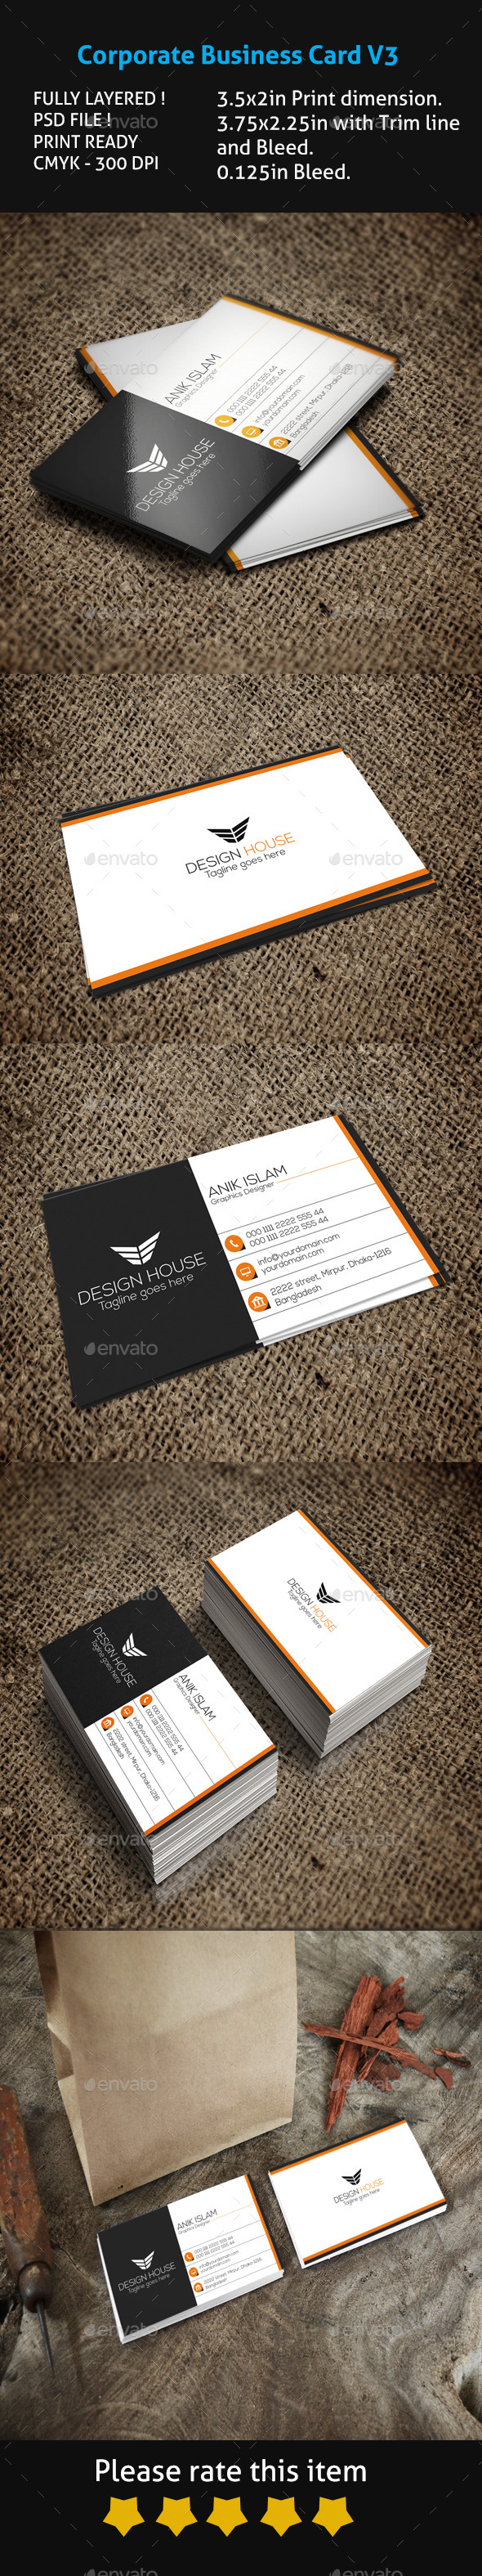 GraphicRiver Corporate Business Card V3 10469044